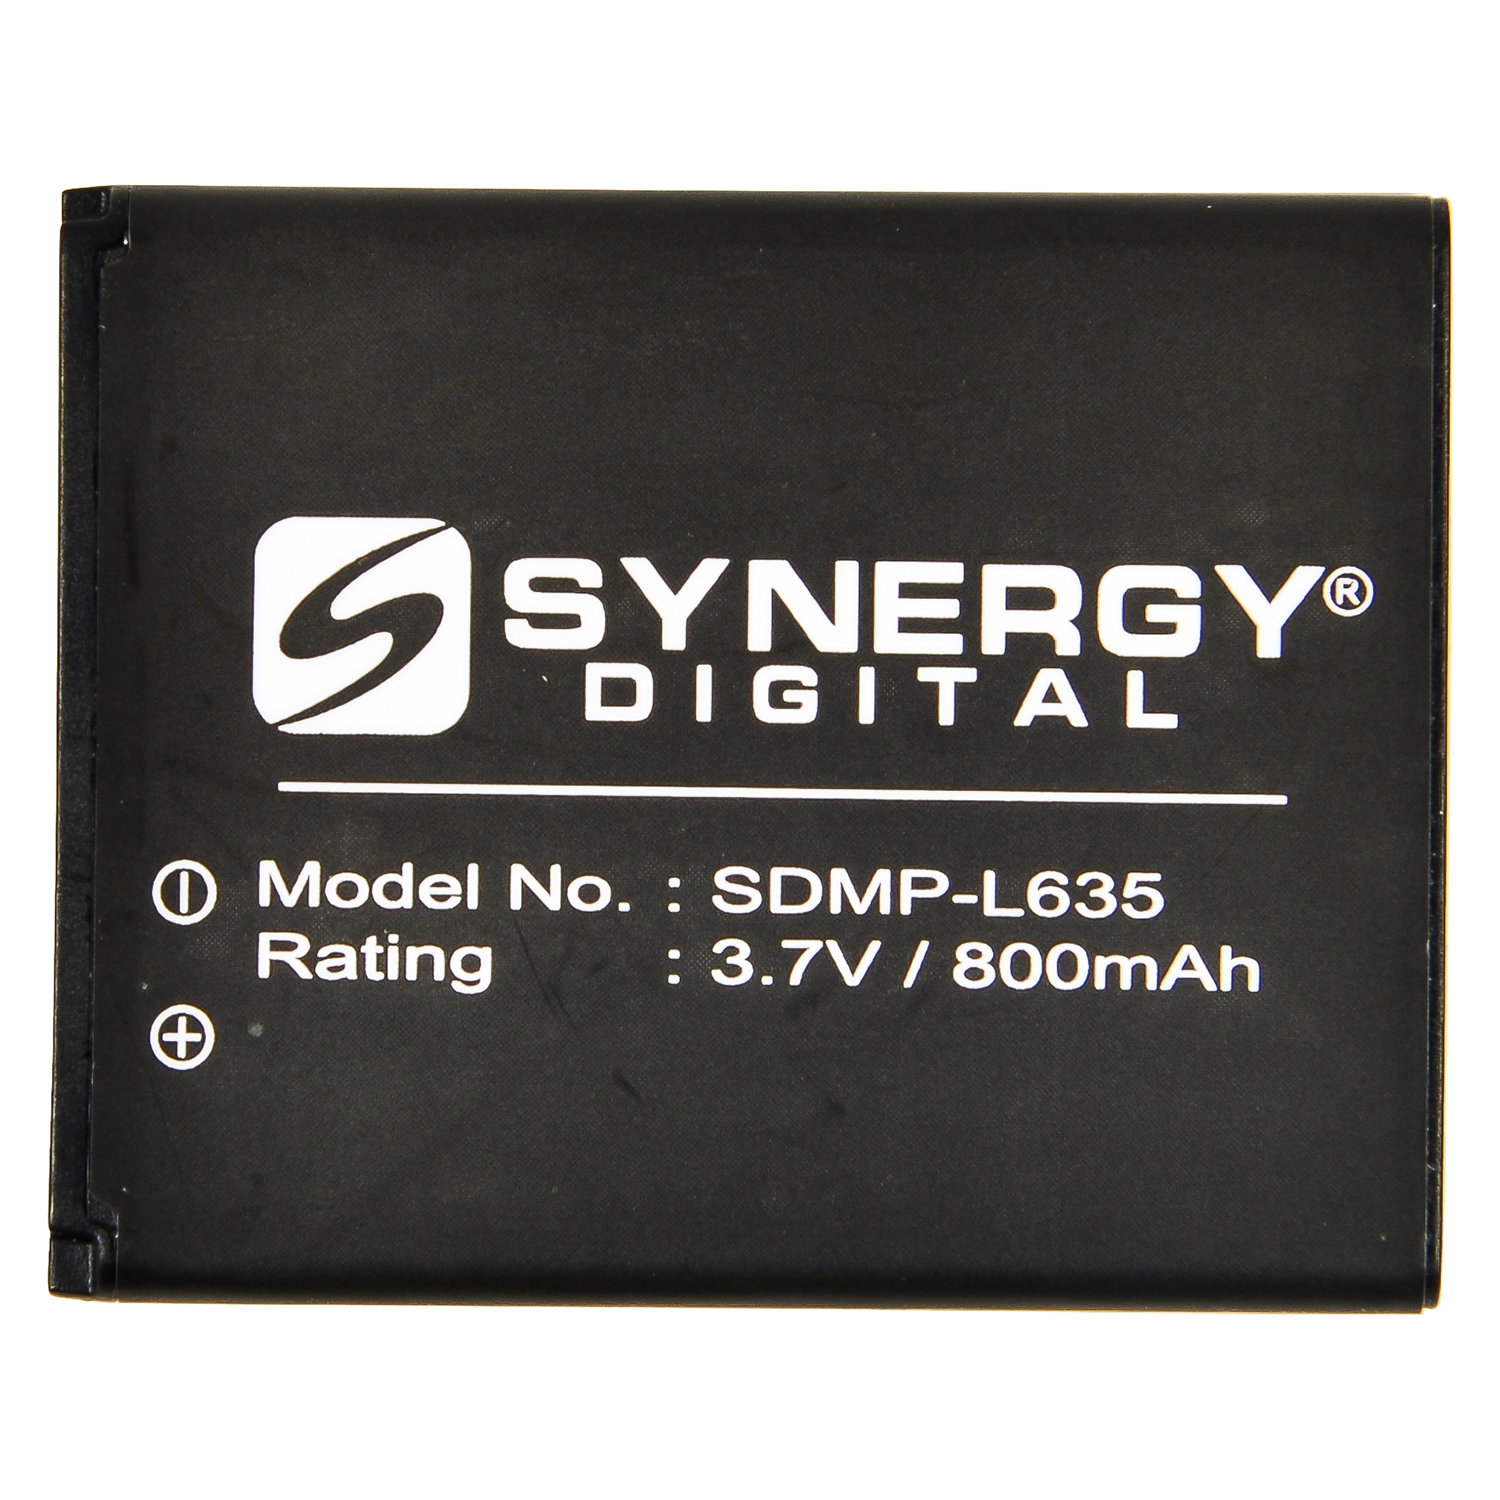 SDMP-L635 Li-Ion Battery - Rechargeable High Capacity (3.7V, 800 mAh) - Replacement For Alcatel OT-880 Cellphone Battery